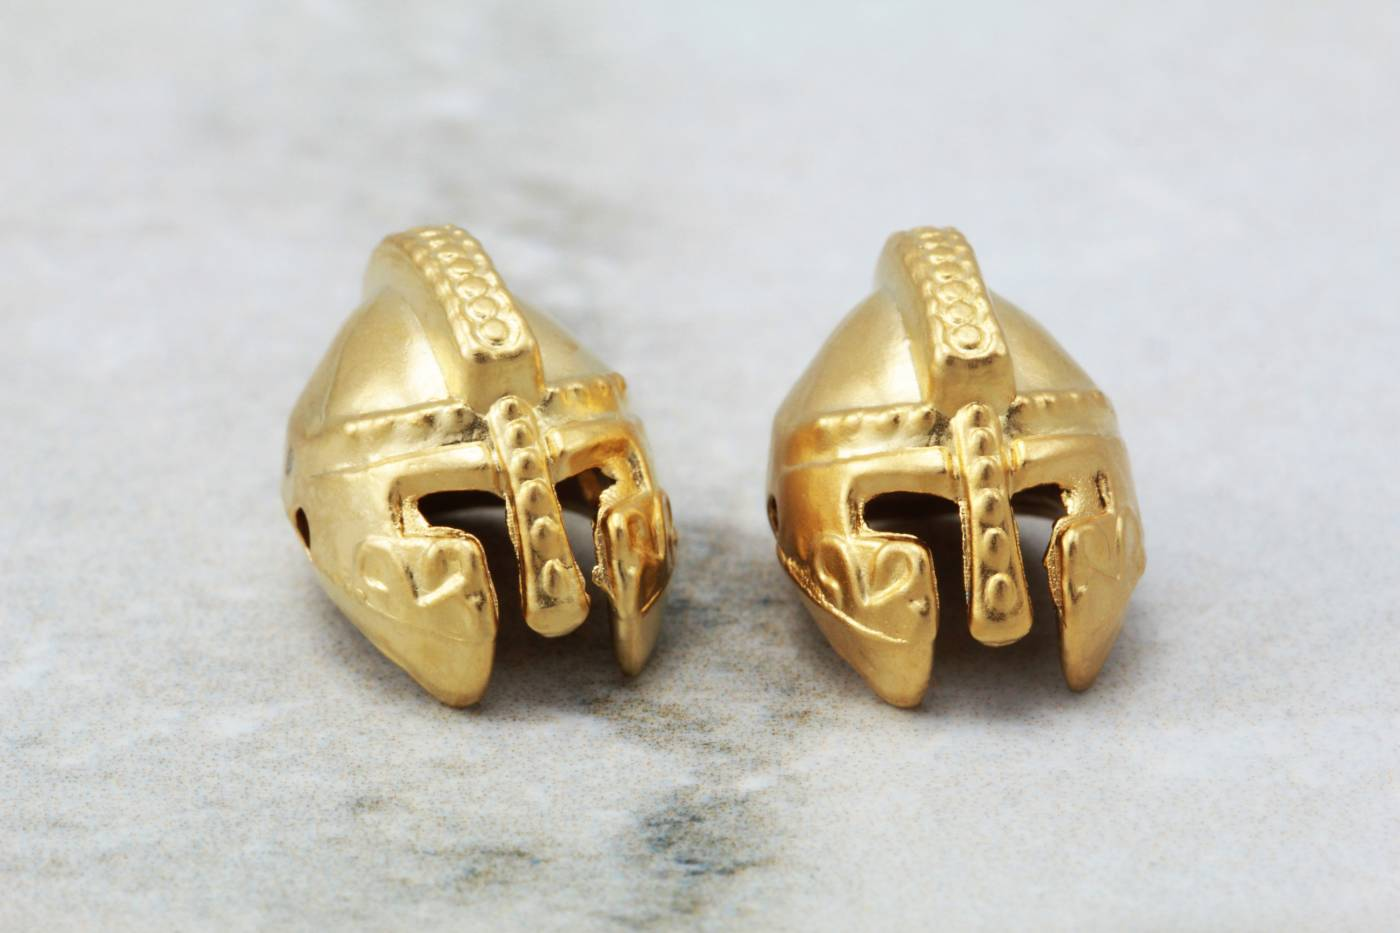 gold-metal-gladiator-charm-for-jewelry.jpg